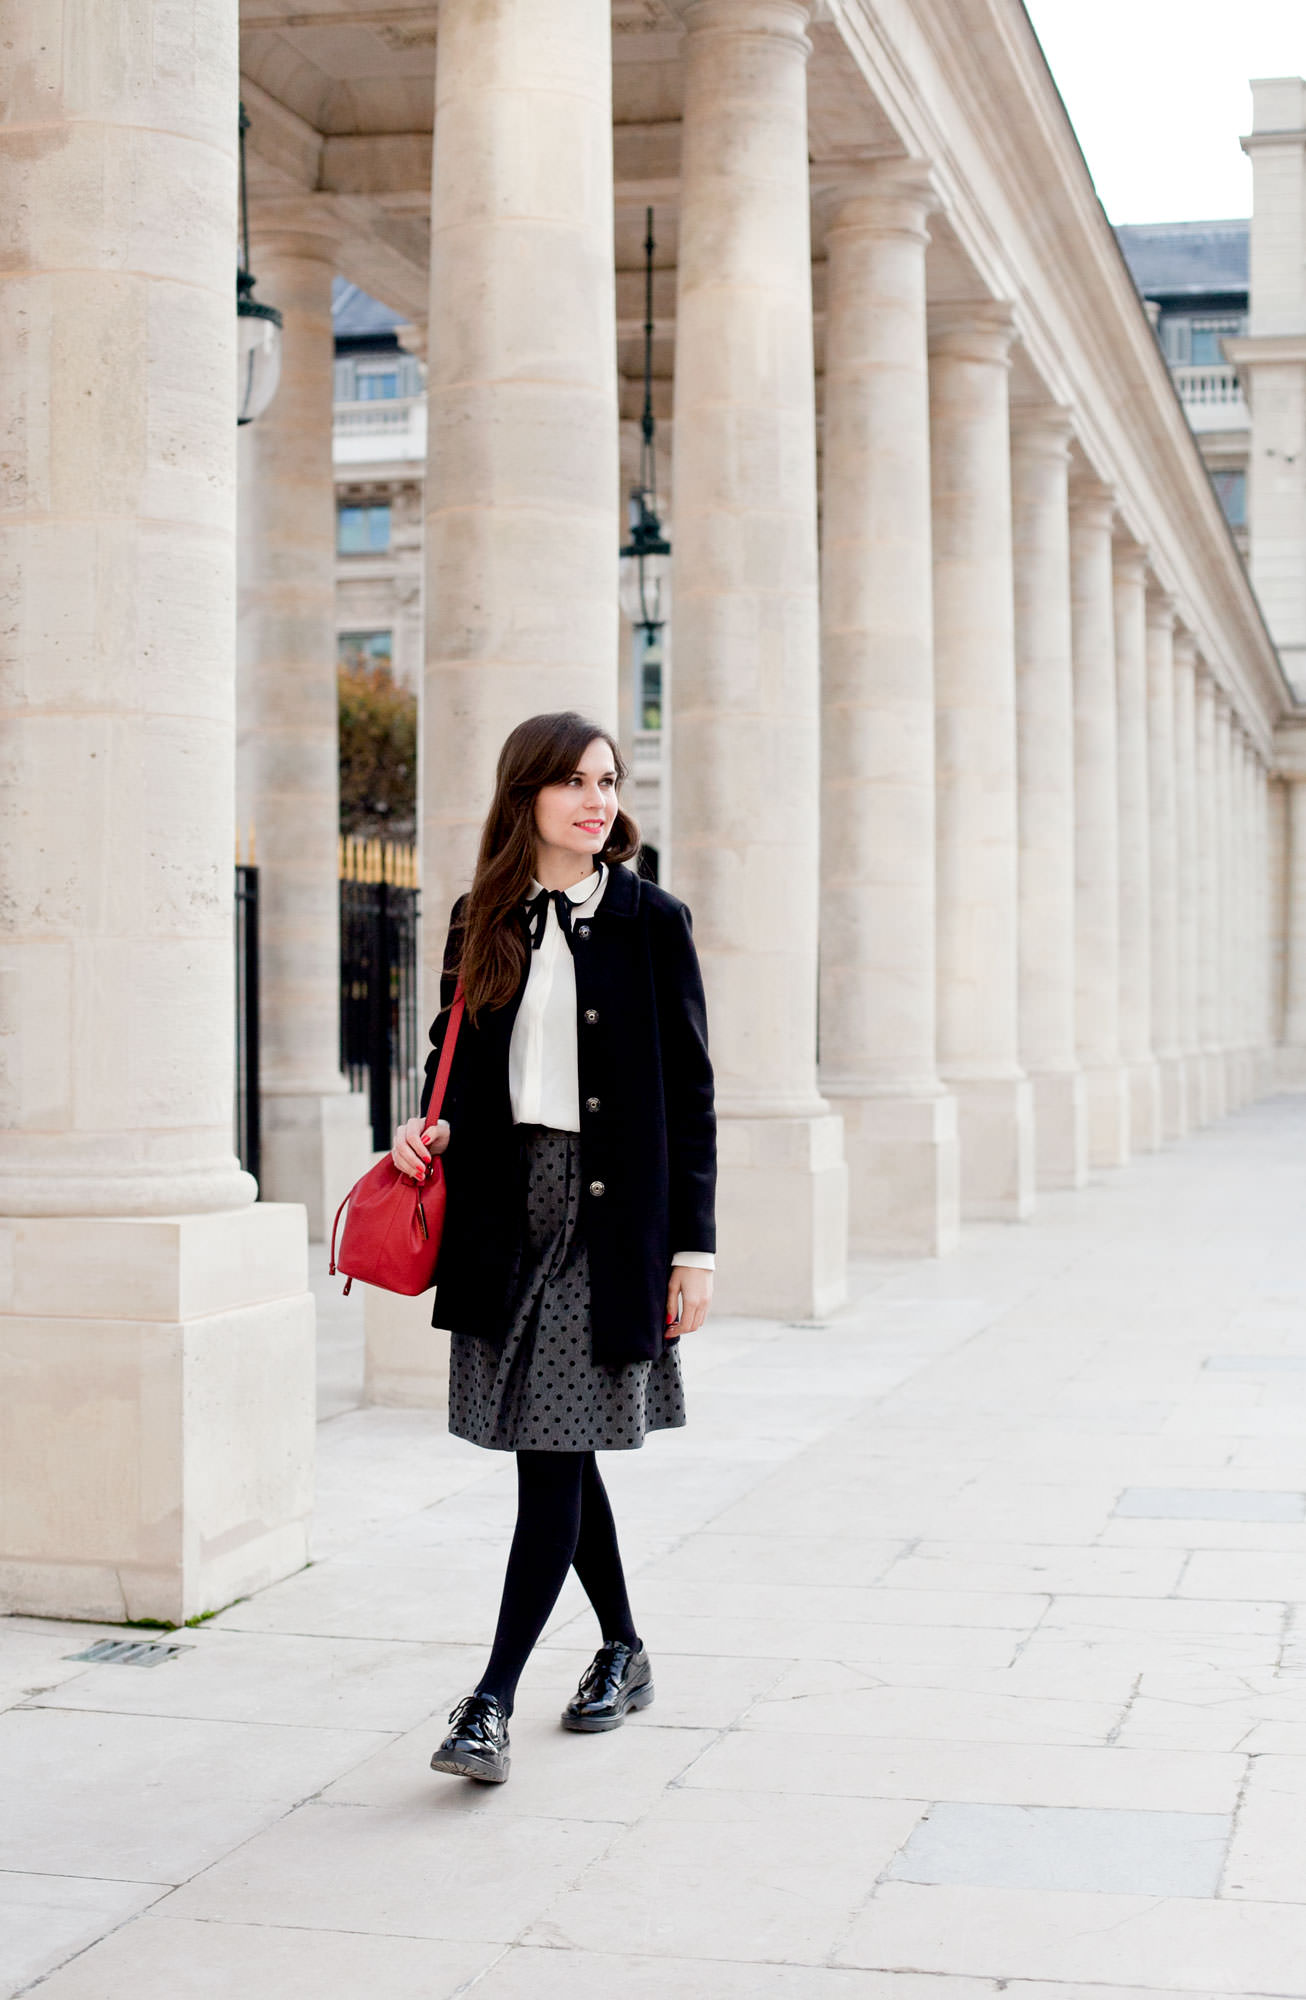 Blog-Mode-And-The-City-Looks-4-looks-4-décennies-iblues